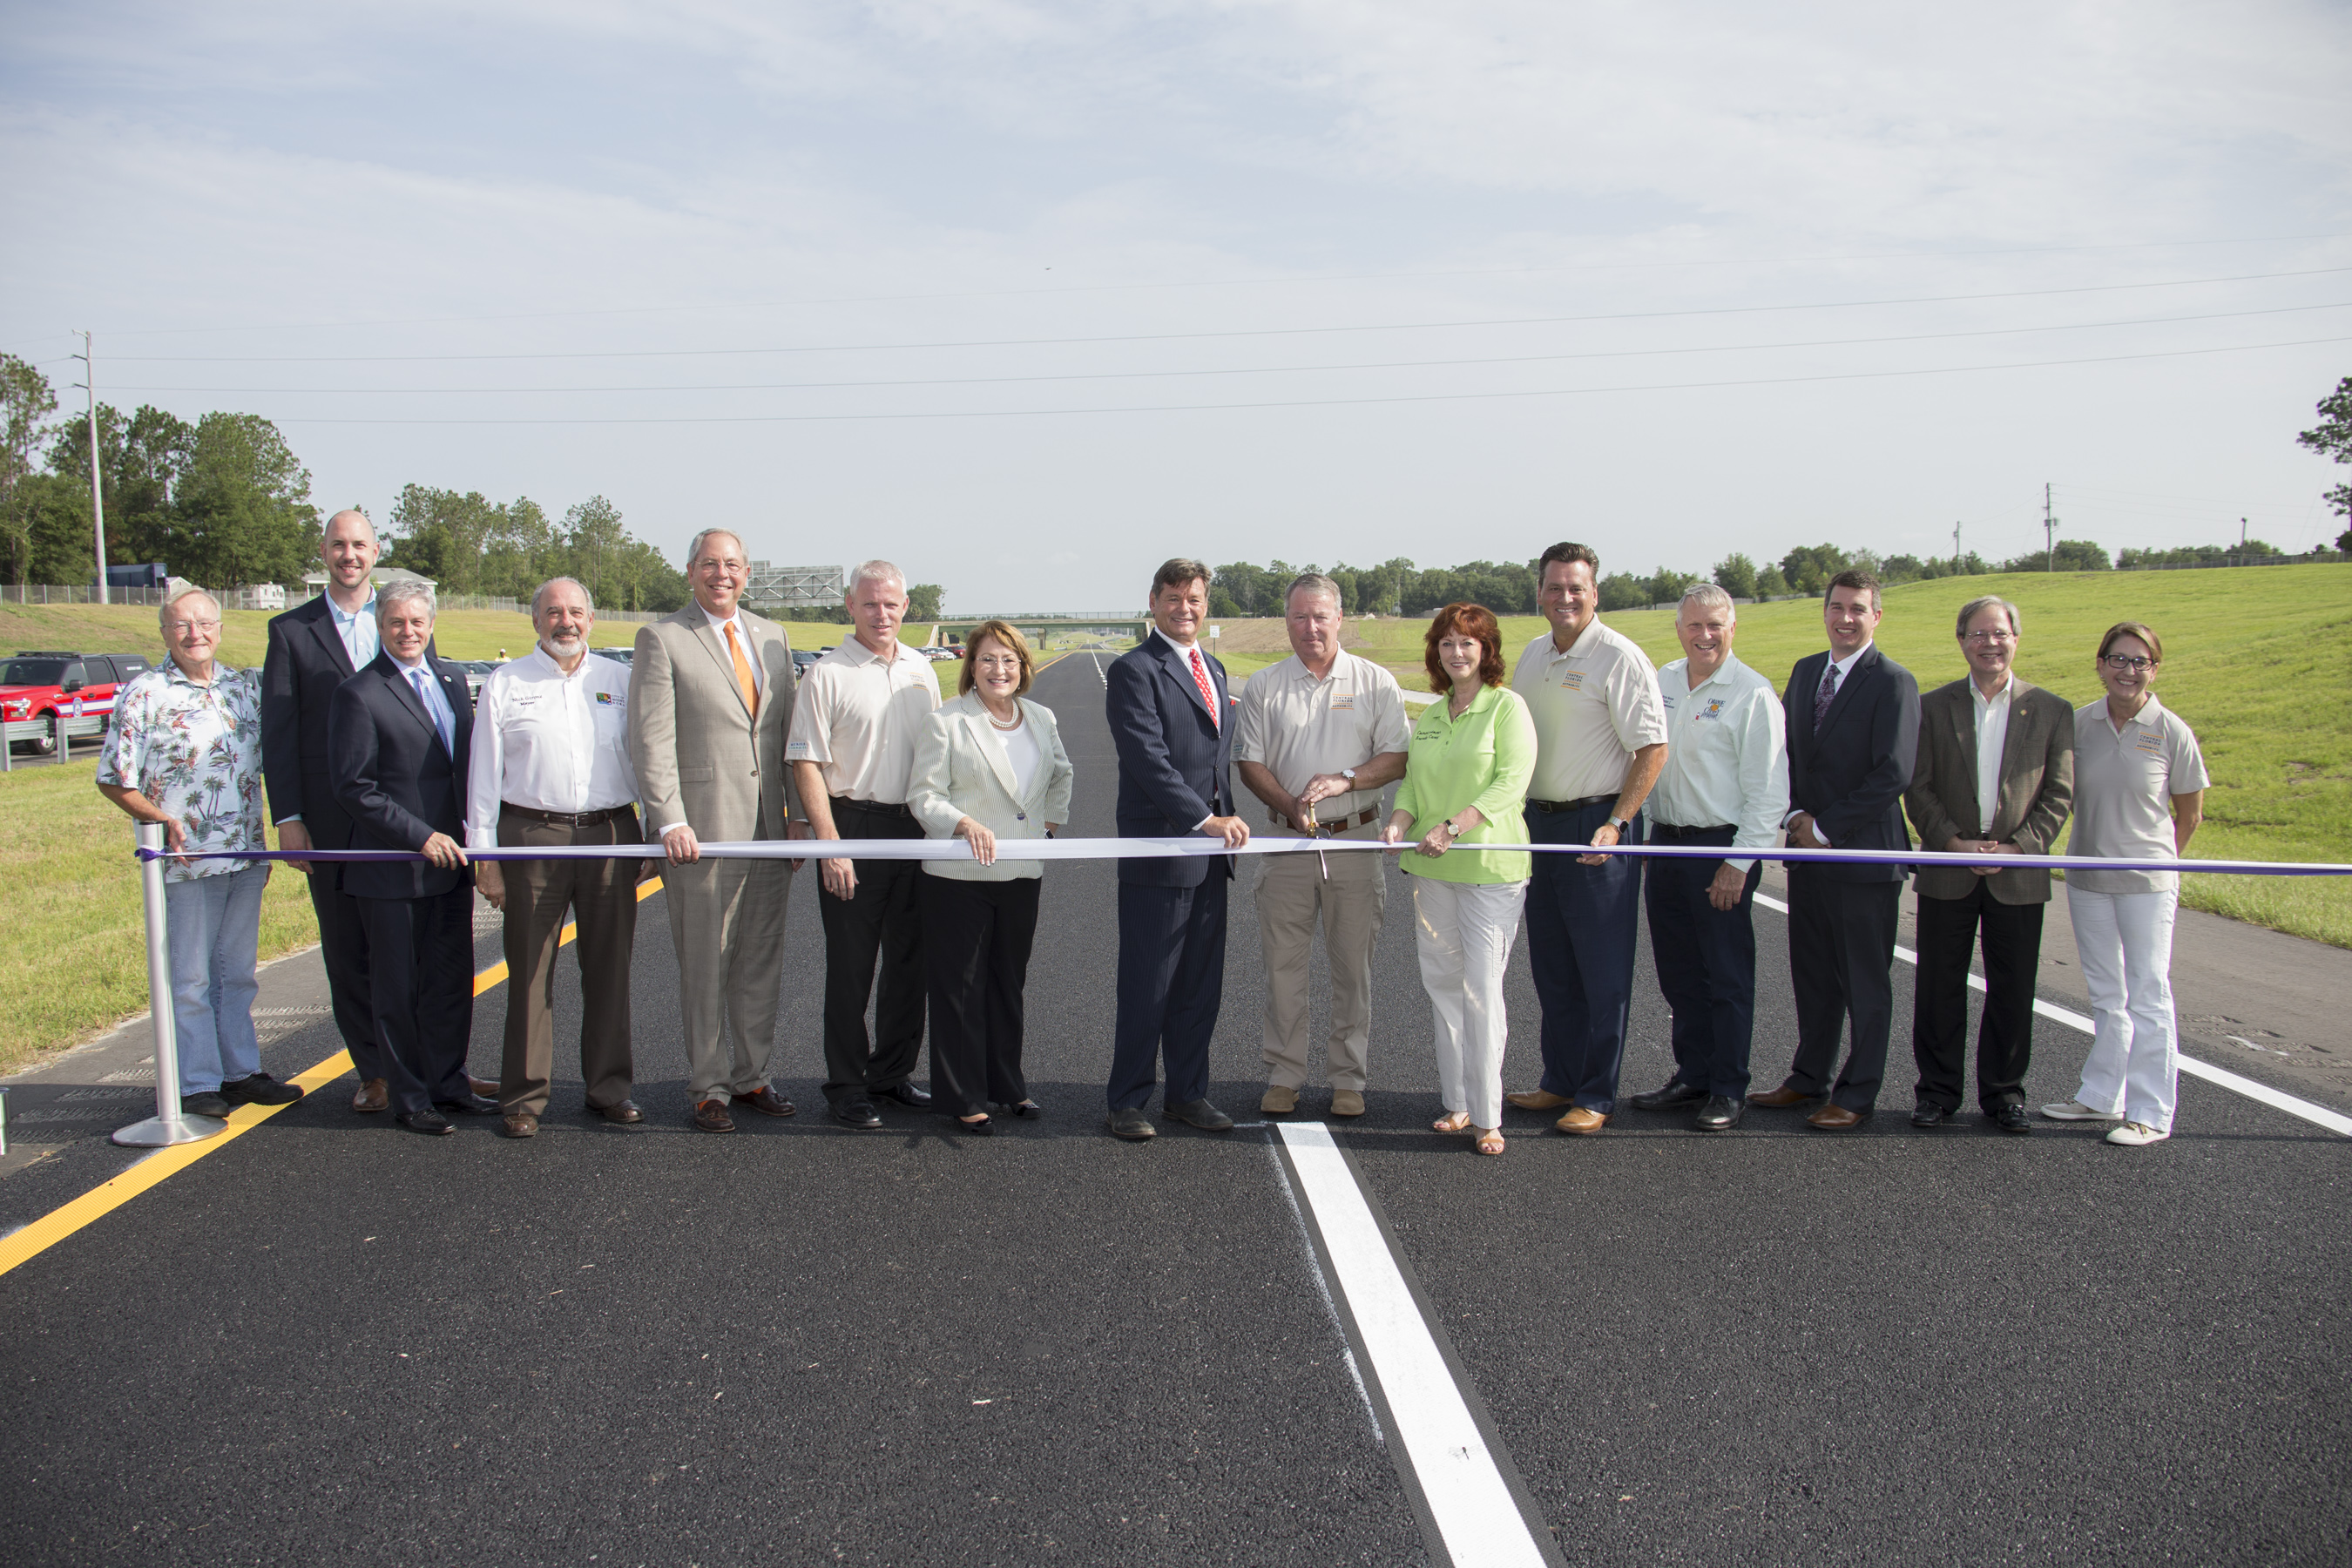 Ribbon cutting for Wekiva Parkway